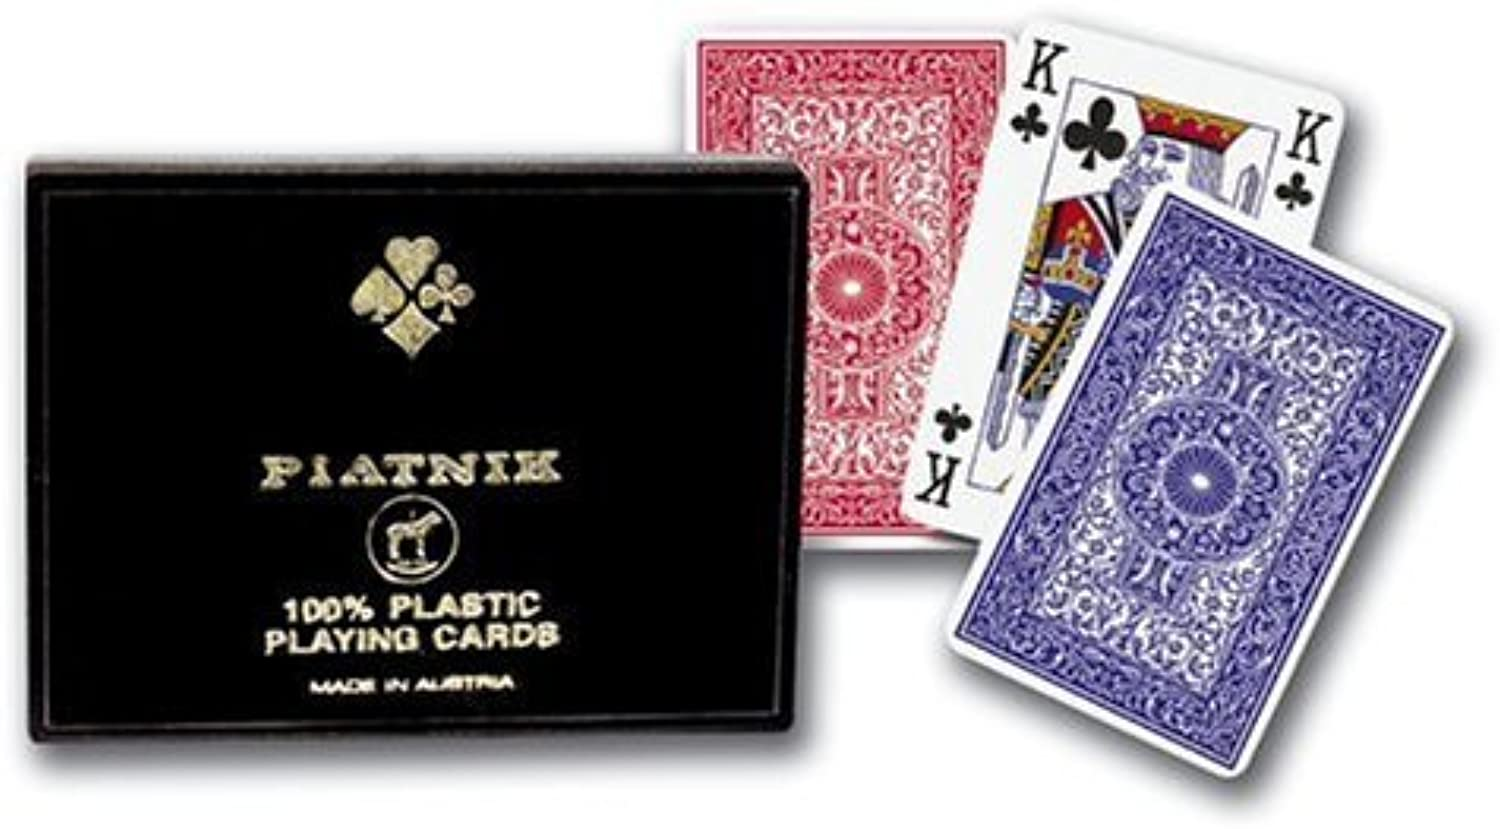 Platnik 100% Plastic Double Deck Playing Cards by Gibsons B01C6NKXXC Neuartiges Design | Zürich Online Shop